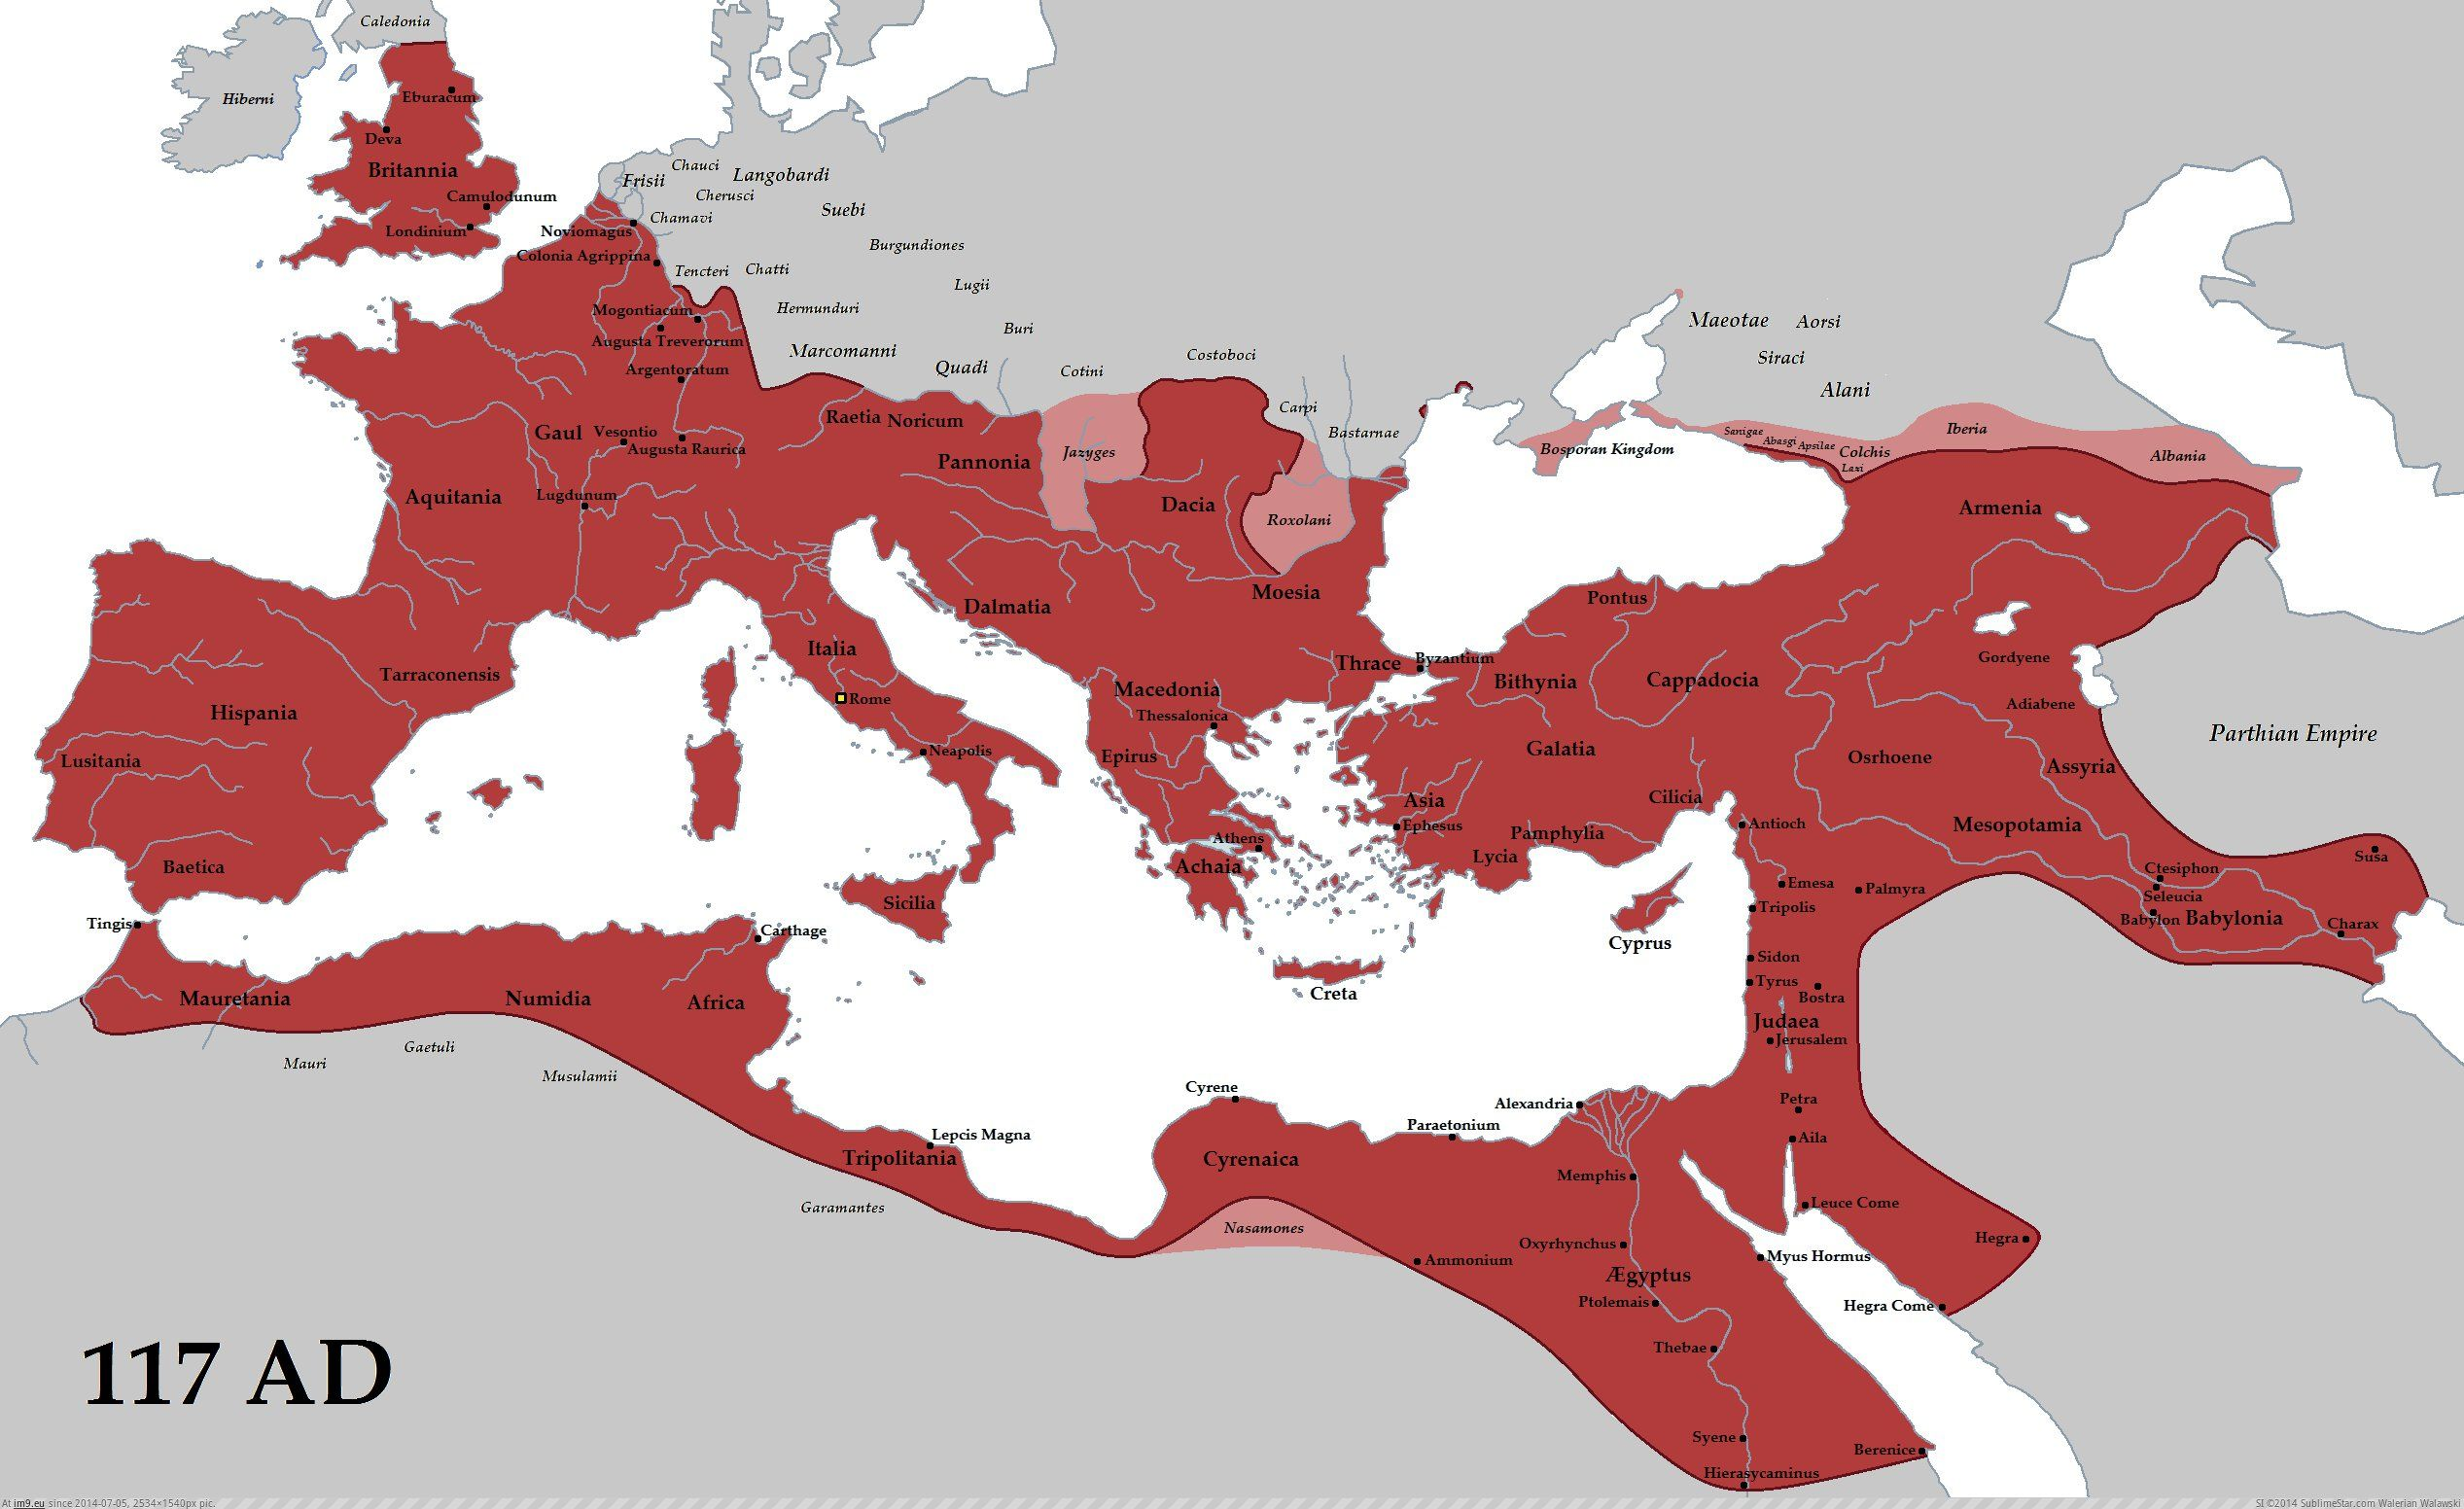 Roman Empire Map at its height